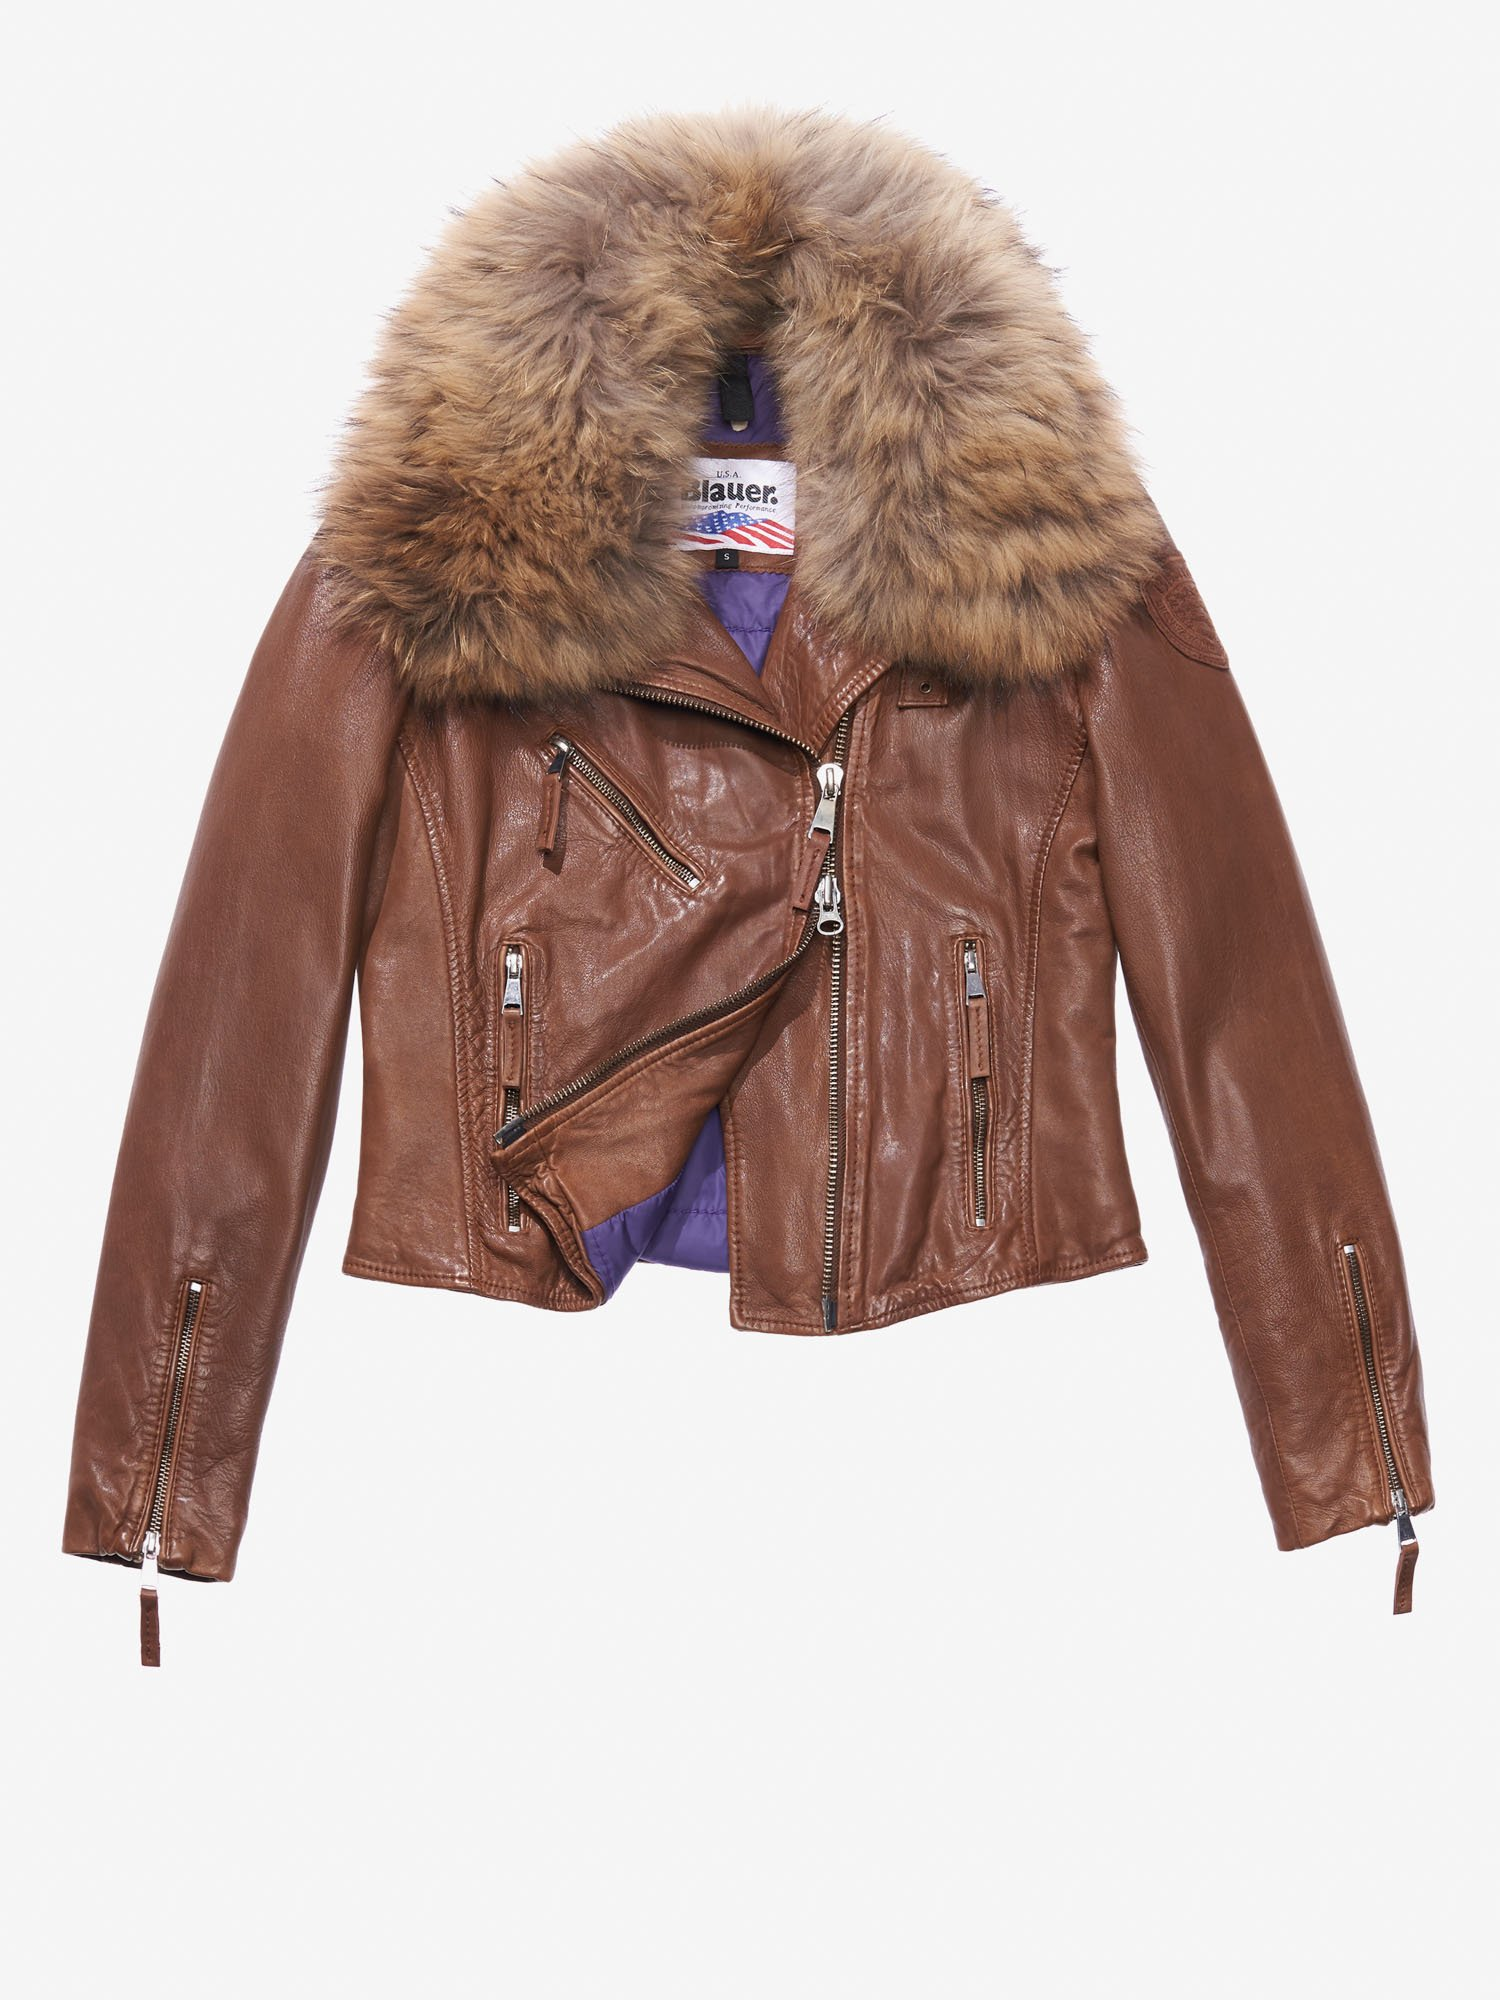 ADELE LEATHER JACKET WITH FUR COLLAR - Blauer